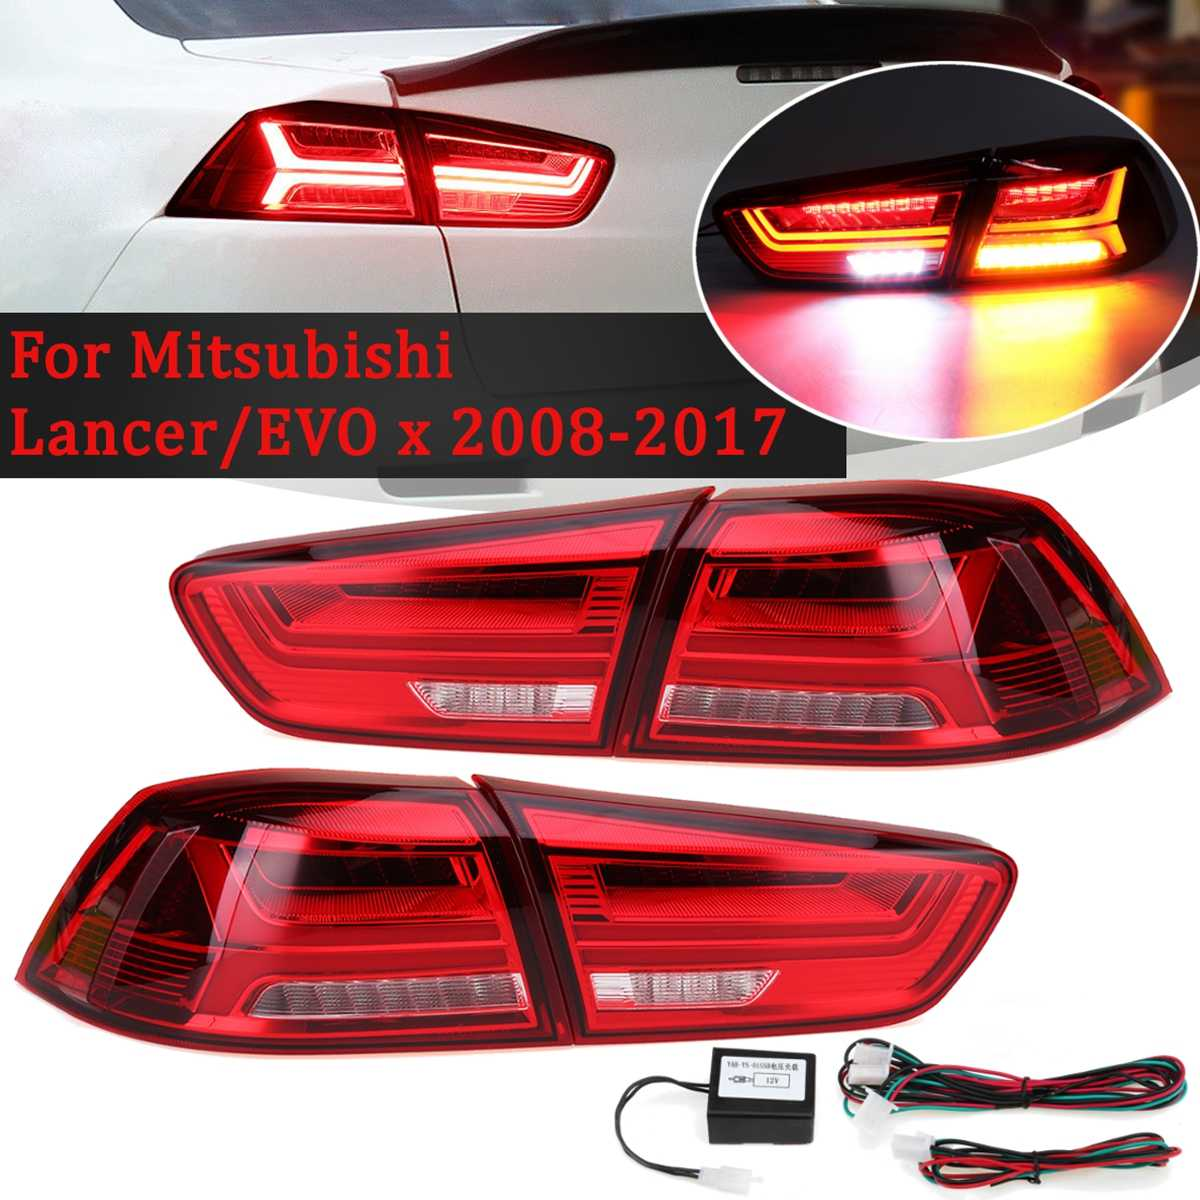 Car Rear LED Tail Brake Light for Mitsubishi Lancer EVO EVOx 2008 2017 Red Shell Lamps Signal LED DRL Stop Rear Lamp Accessories